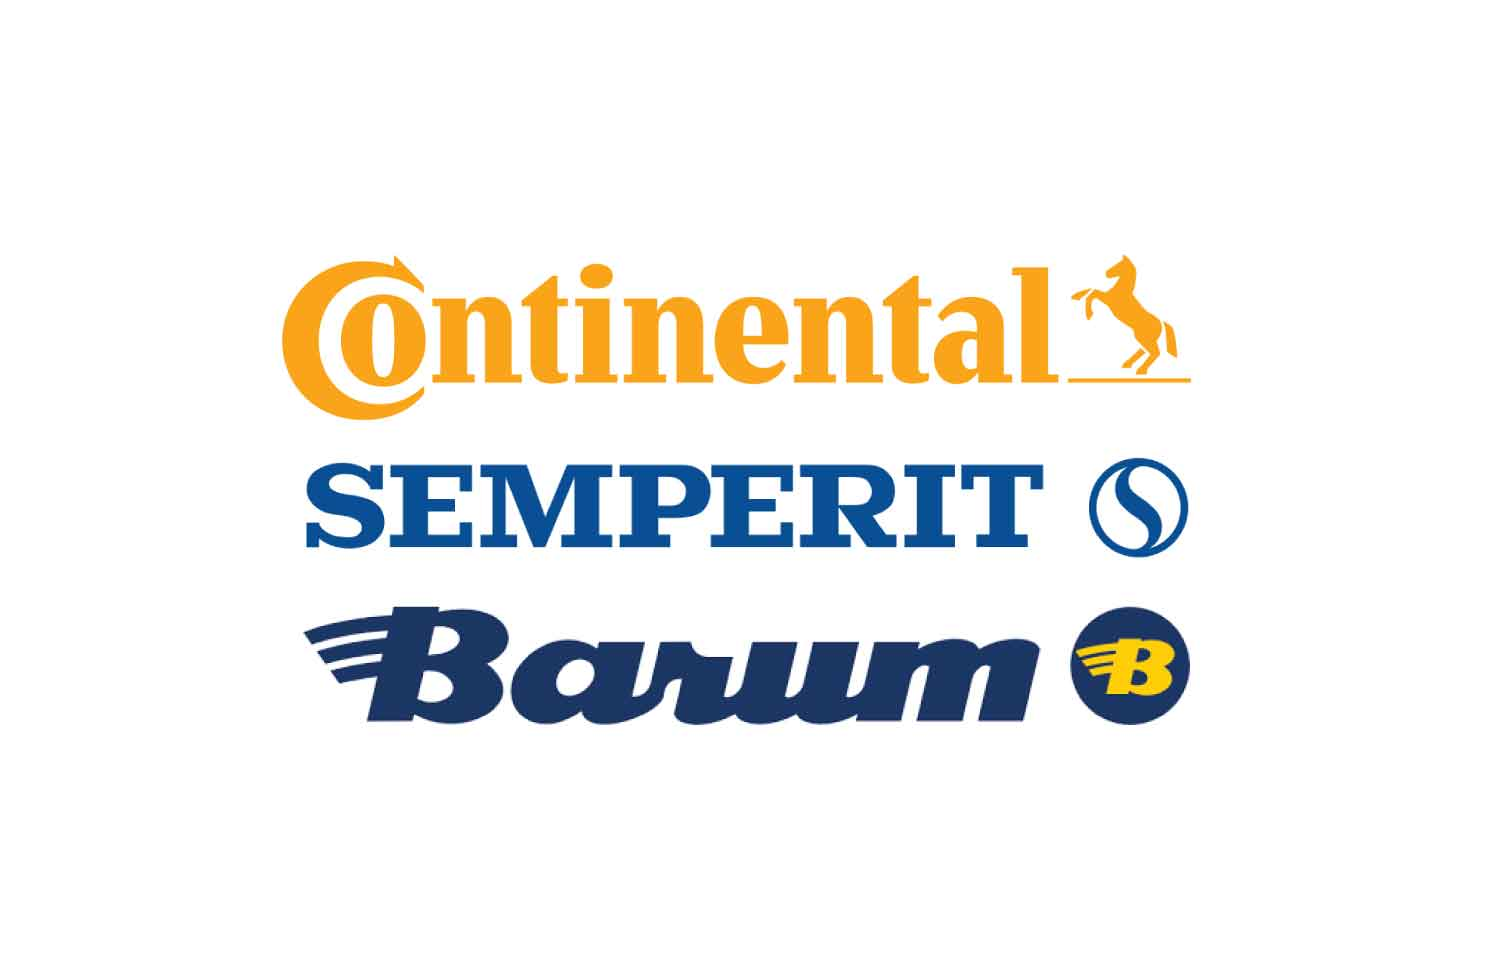 Pnevmatike Continental, Semperit in Barum